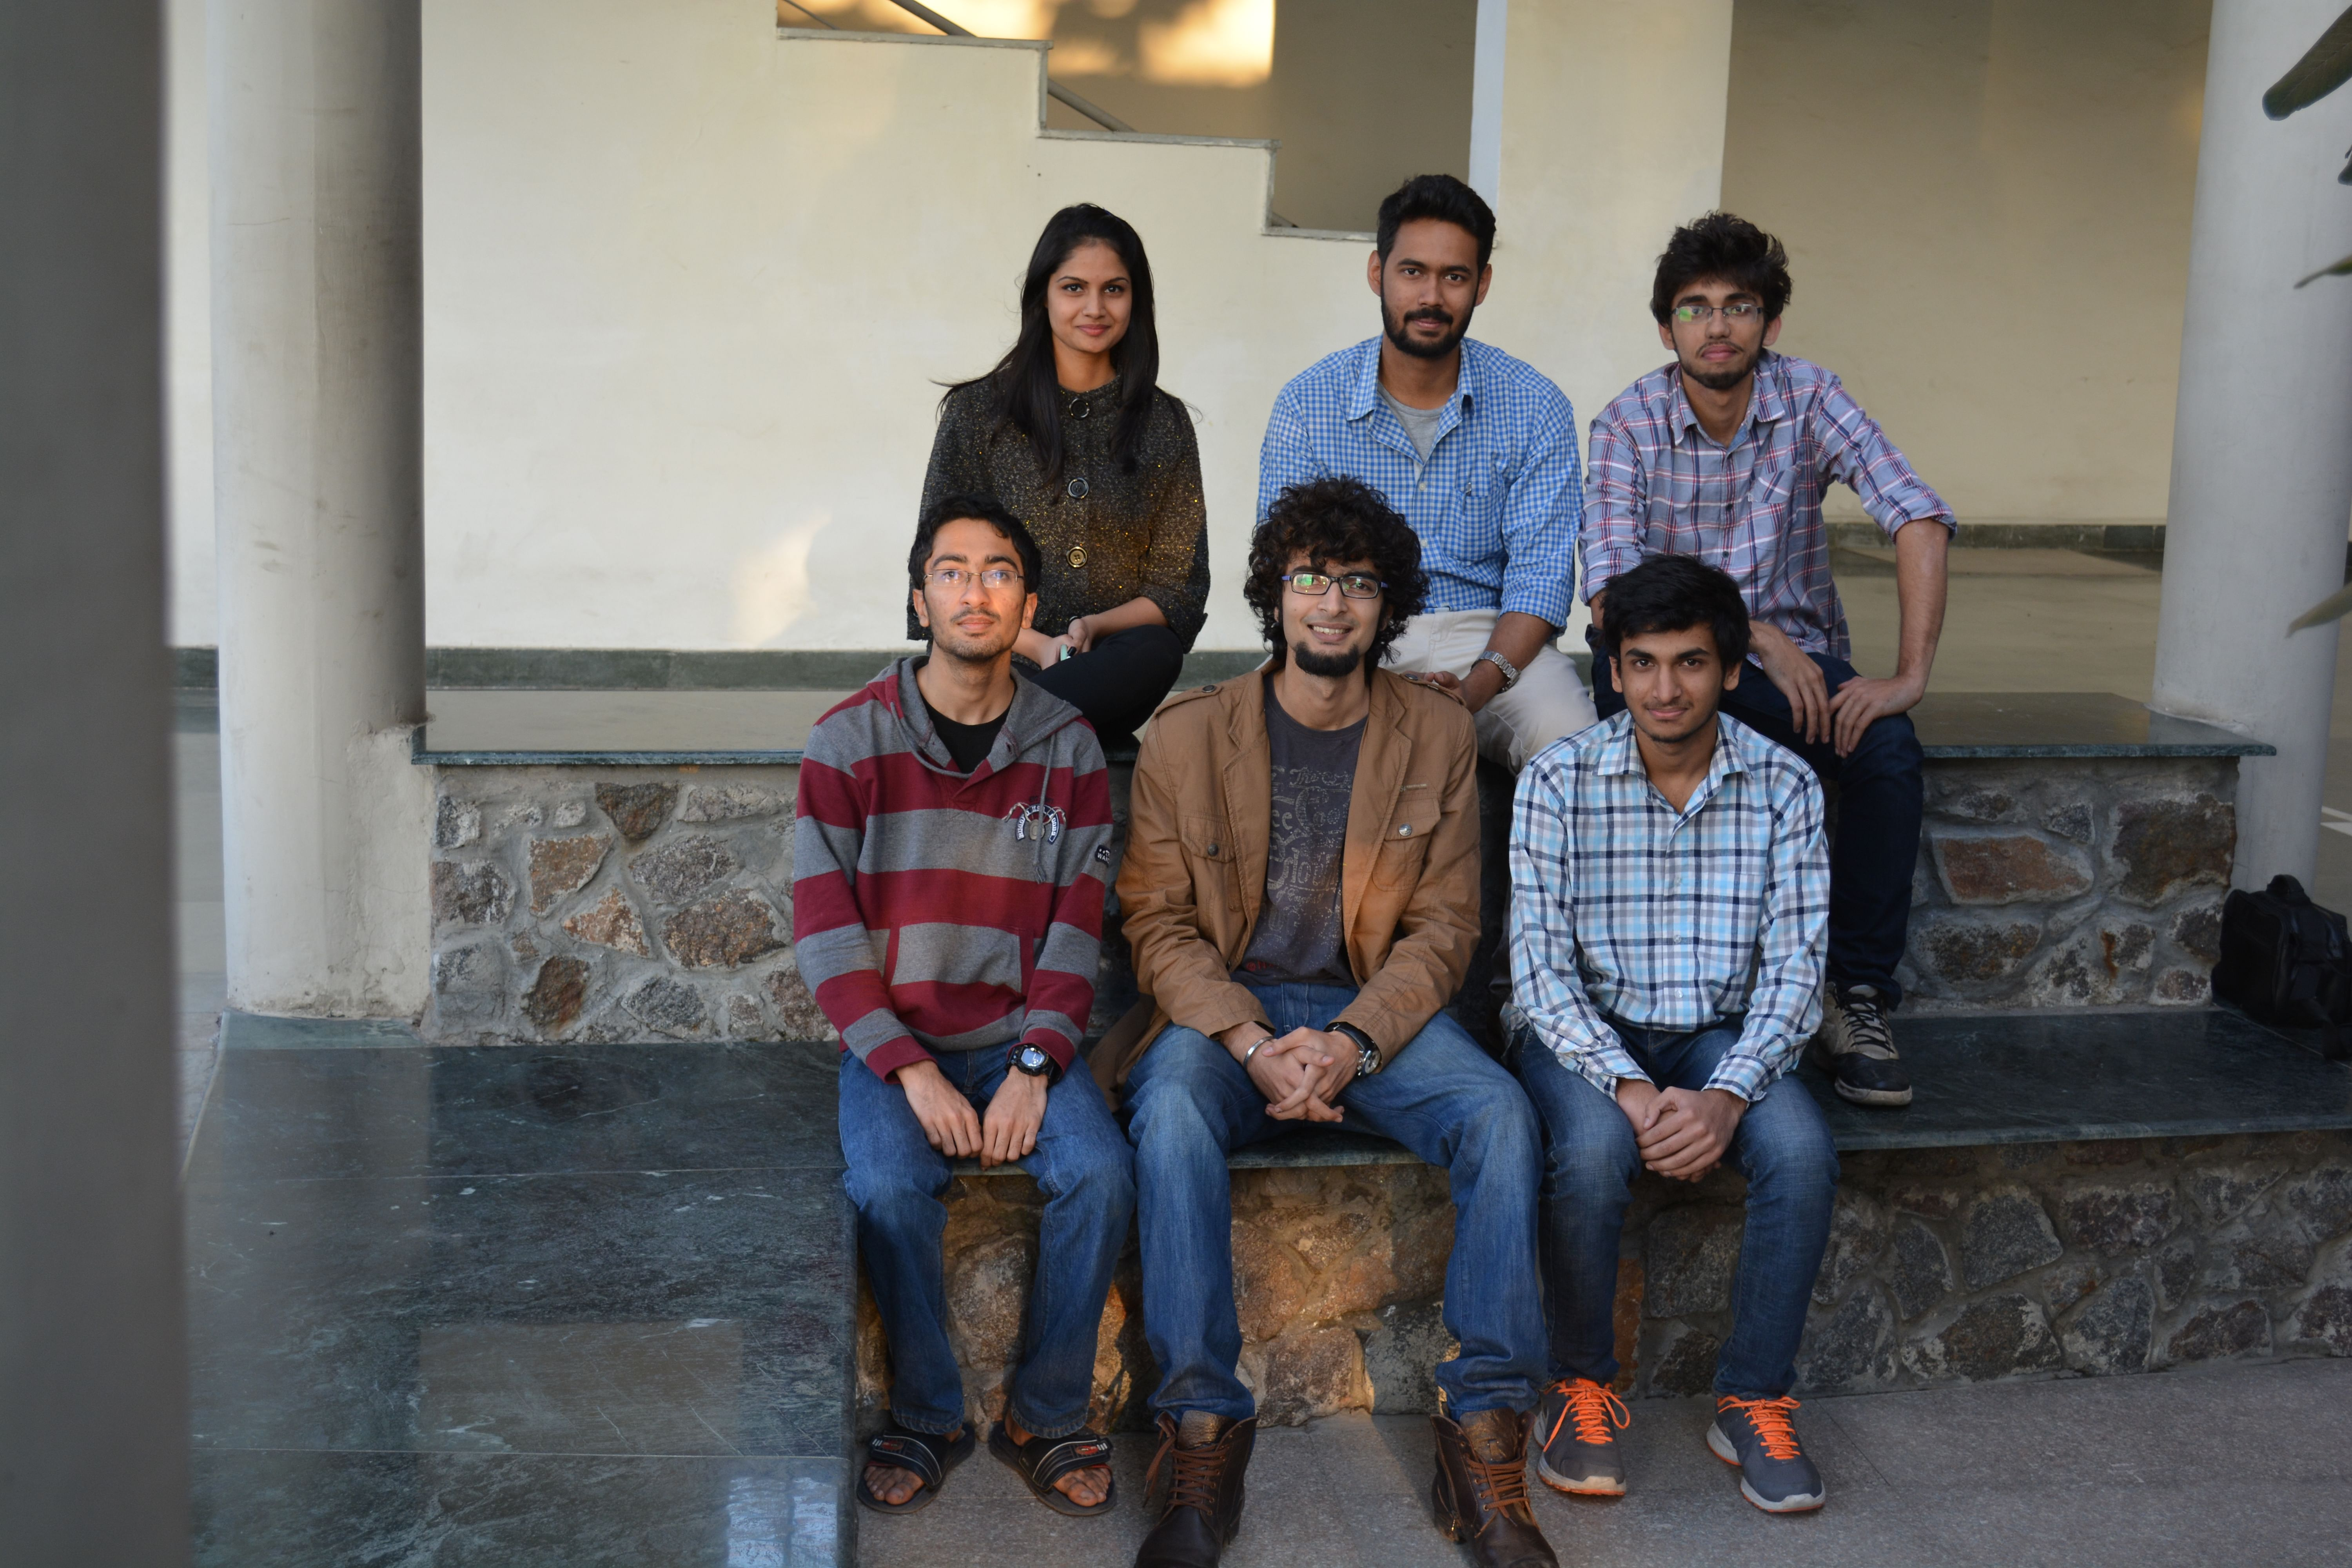 The young team behind the initiative.